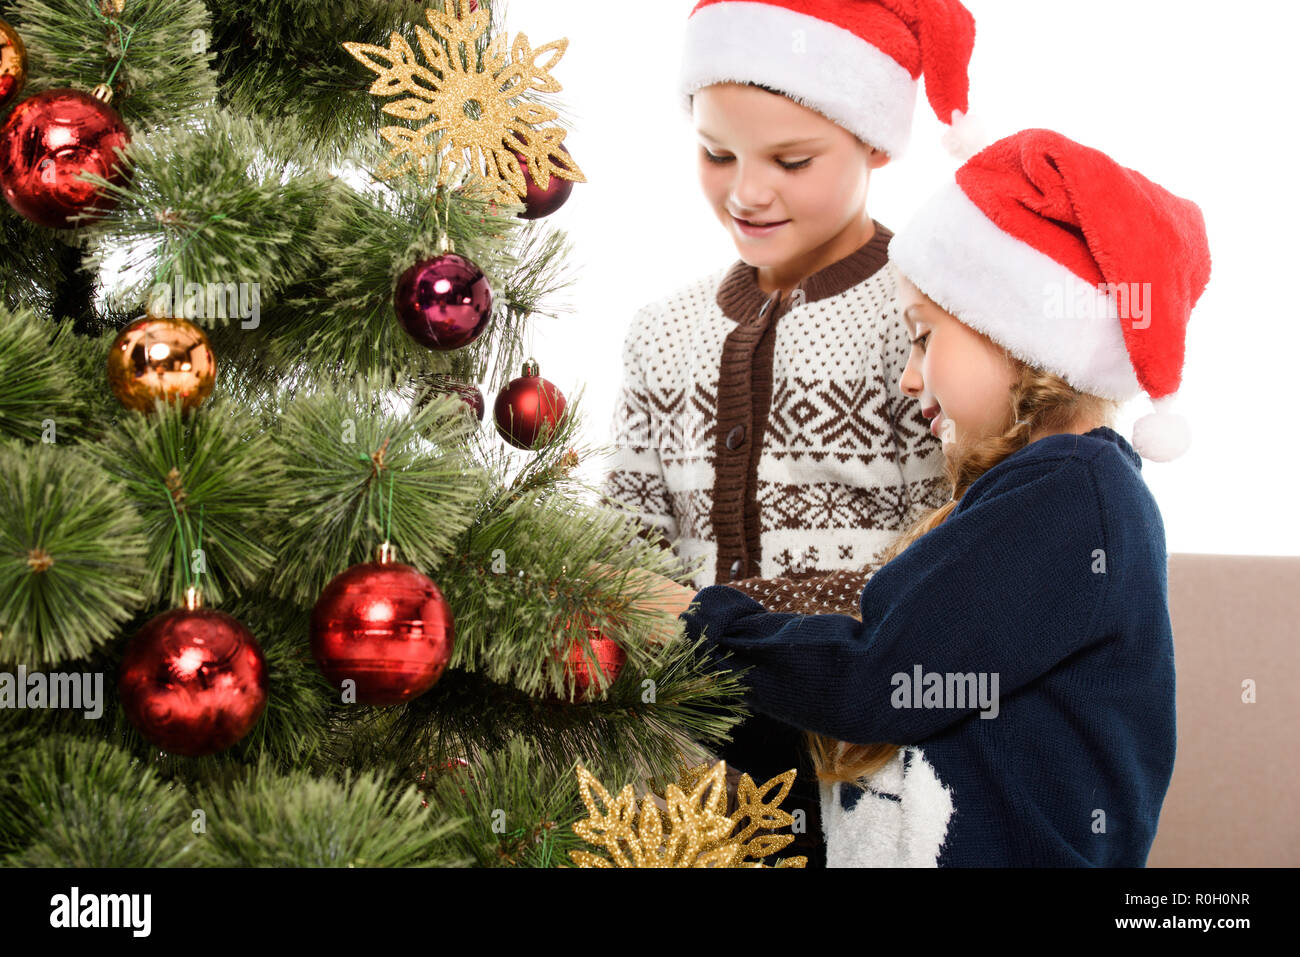 Happy Kids In Santa Hat Decorating Christmas Tree Together Isolated On White Stock Photo Alamy